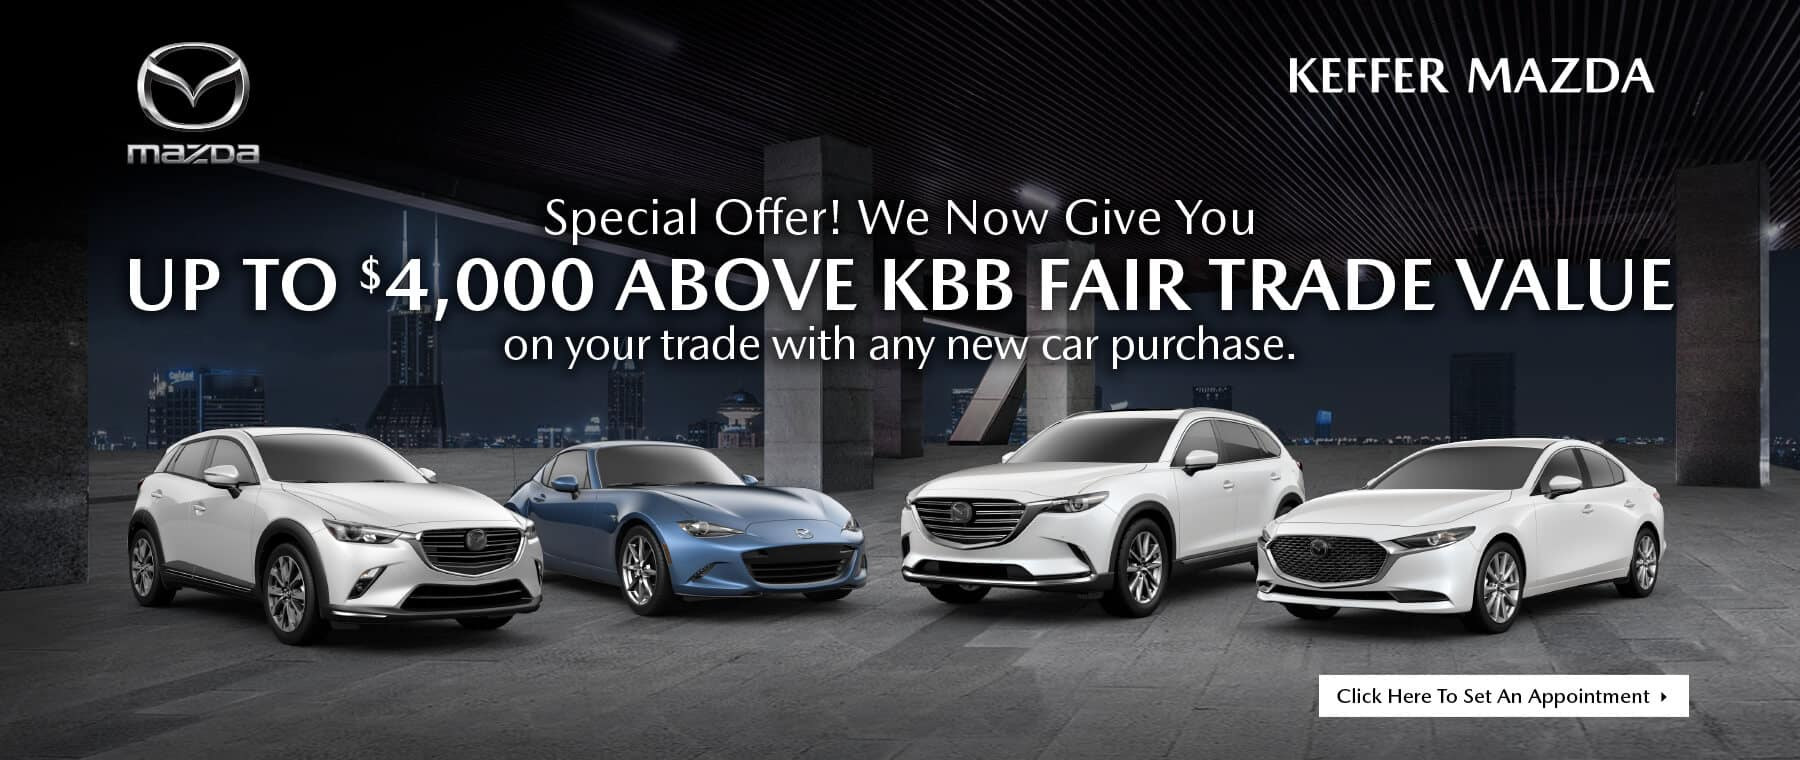 SPECIAL OFFER! WE NOW GIVE YOU UP TO $4,000 ABOVE KBB FAIR TRADE VALUE OM YOUR TRADE WITH ANY NEW CAR PURCHASE